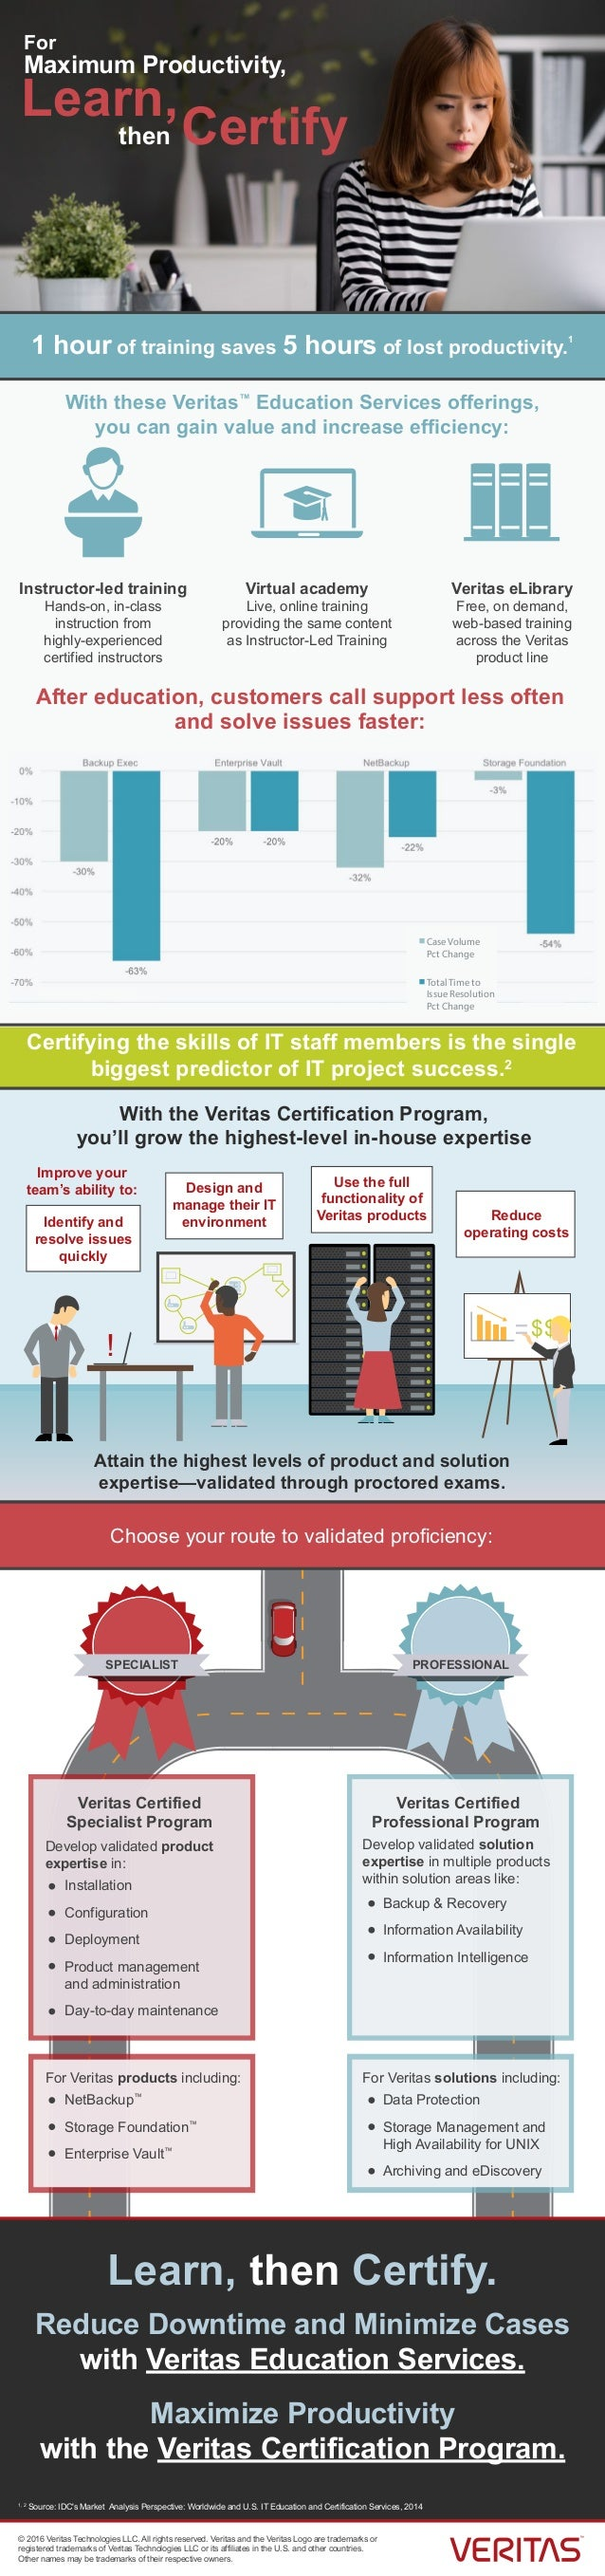 For Maximum Productivity, then Learn, Certify Certifying the skills of IT staff members is the single biggest predictor of...